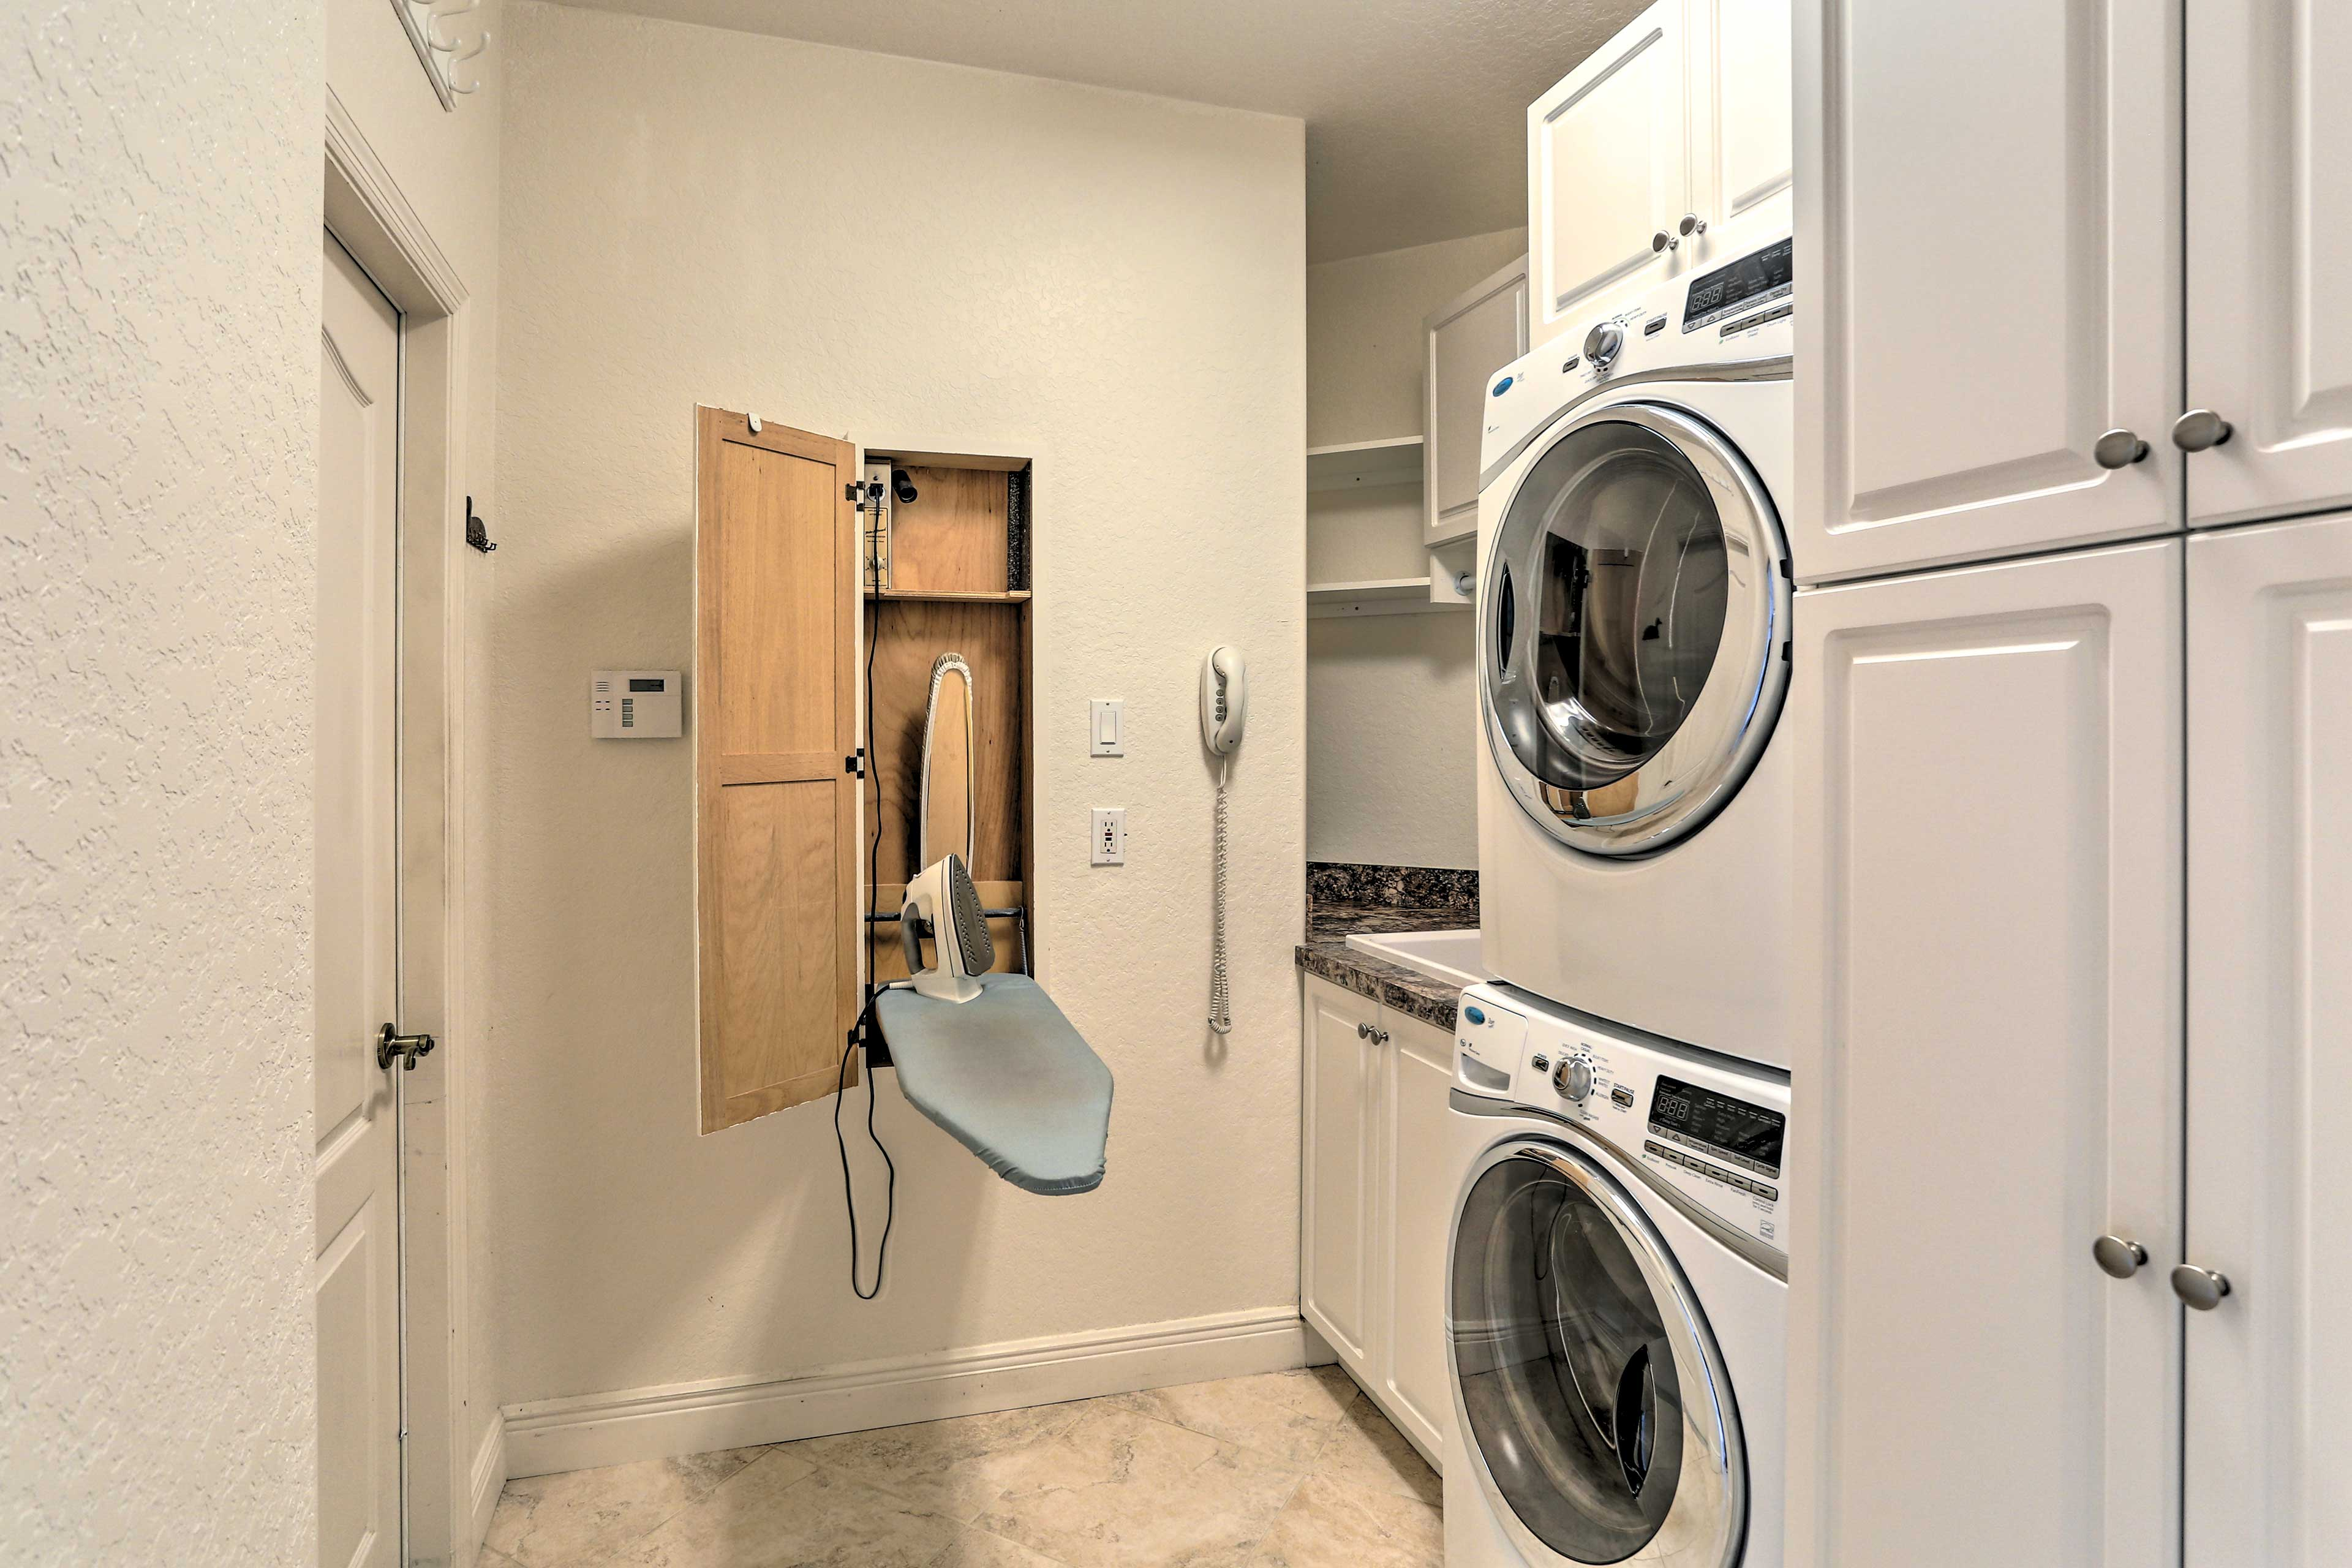 For convenience, guests have access to a washer/dryer and ironing board.